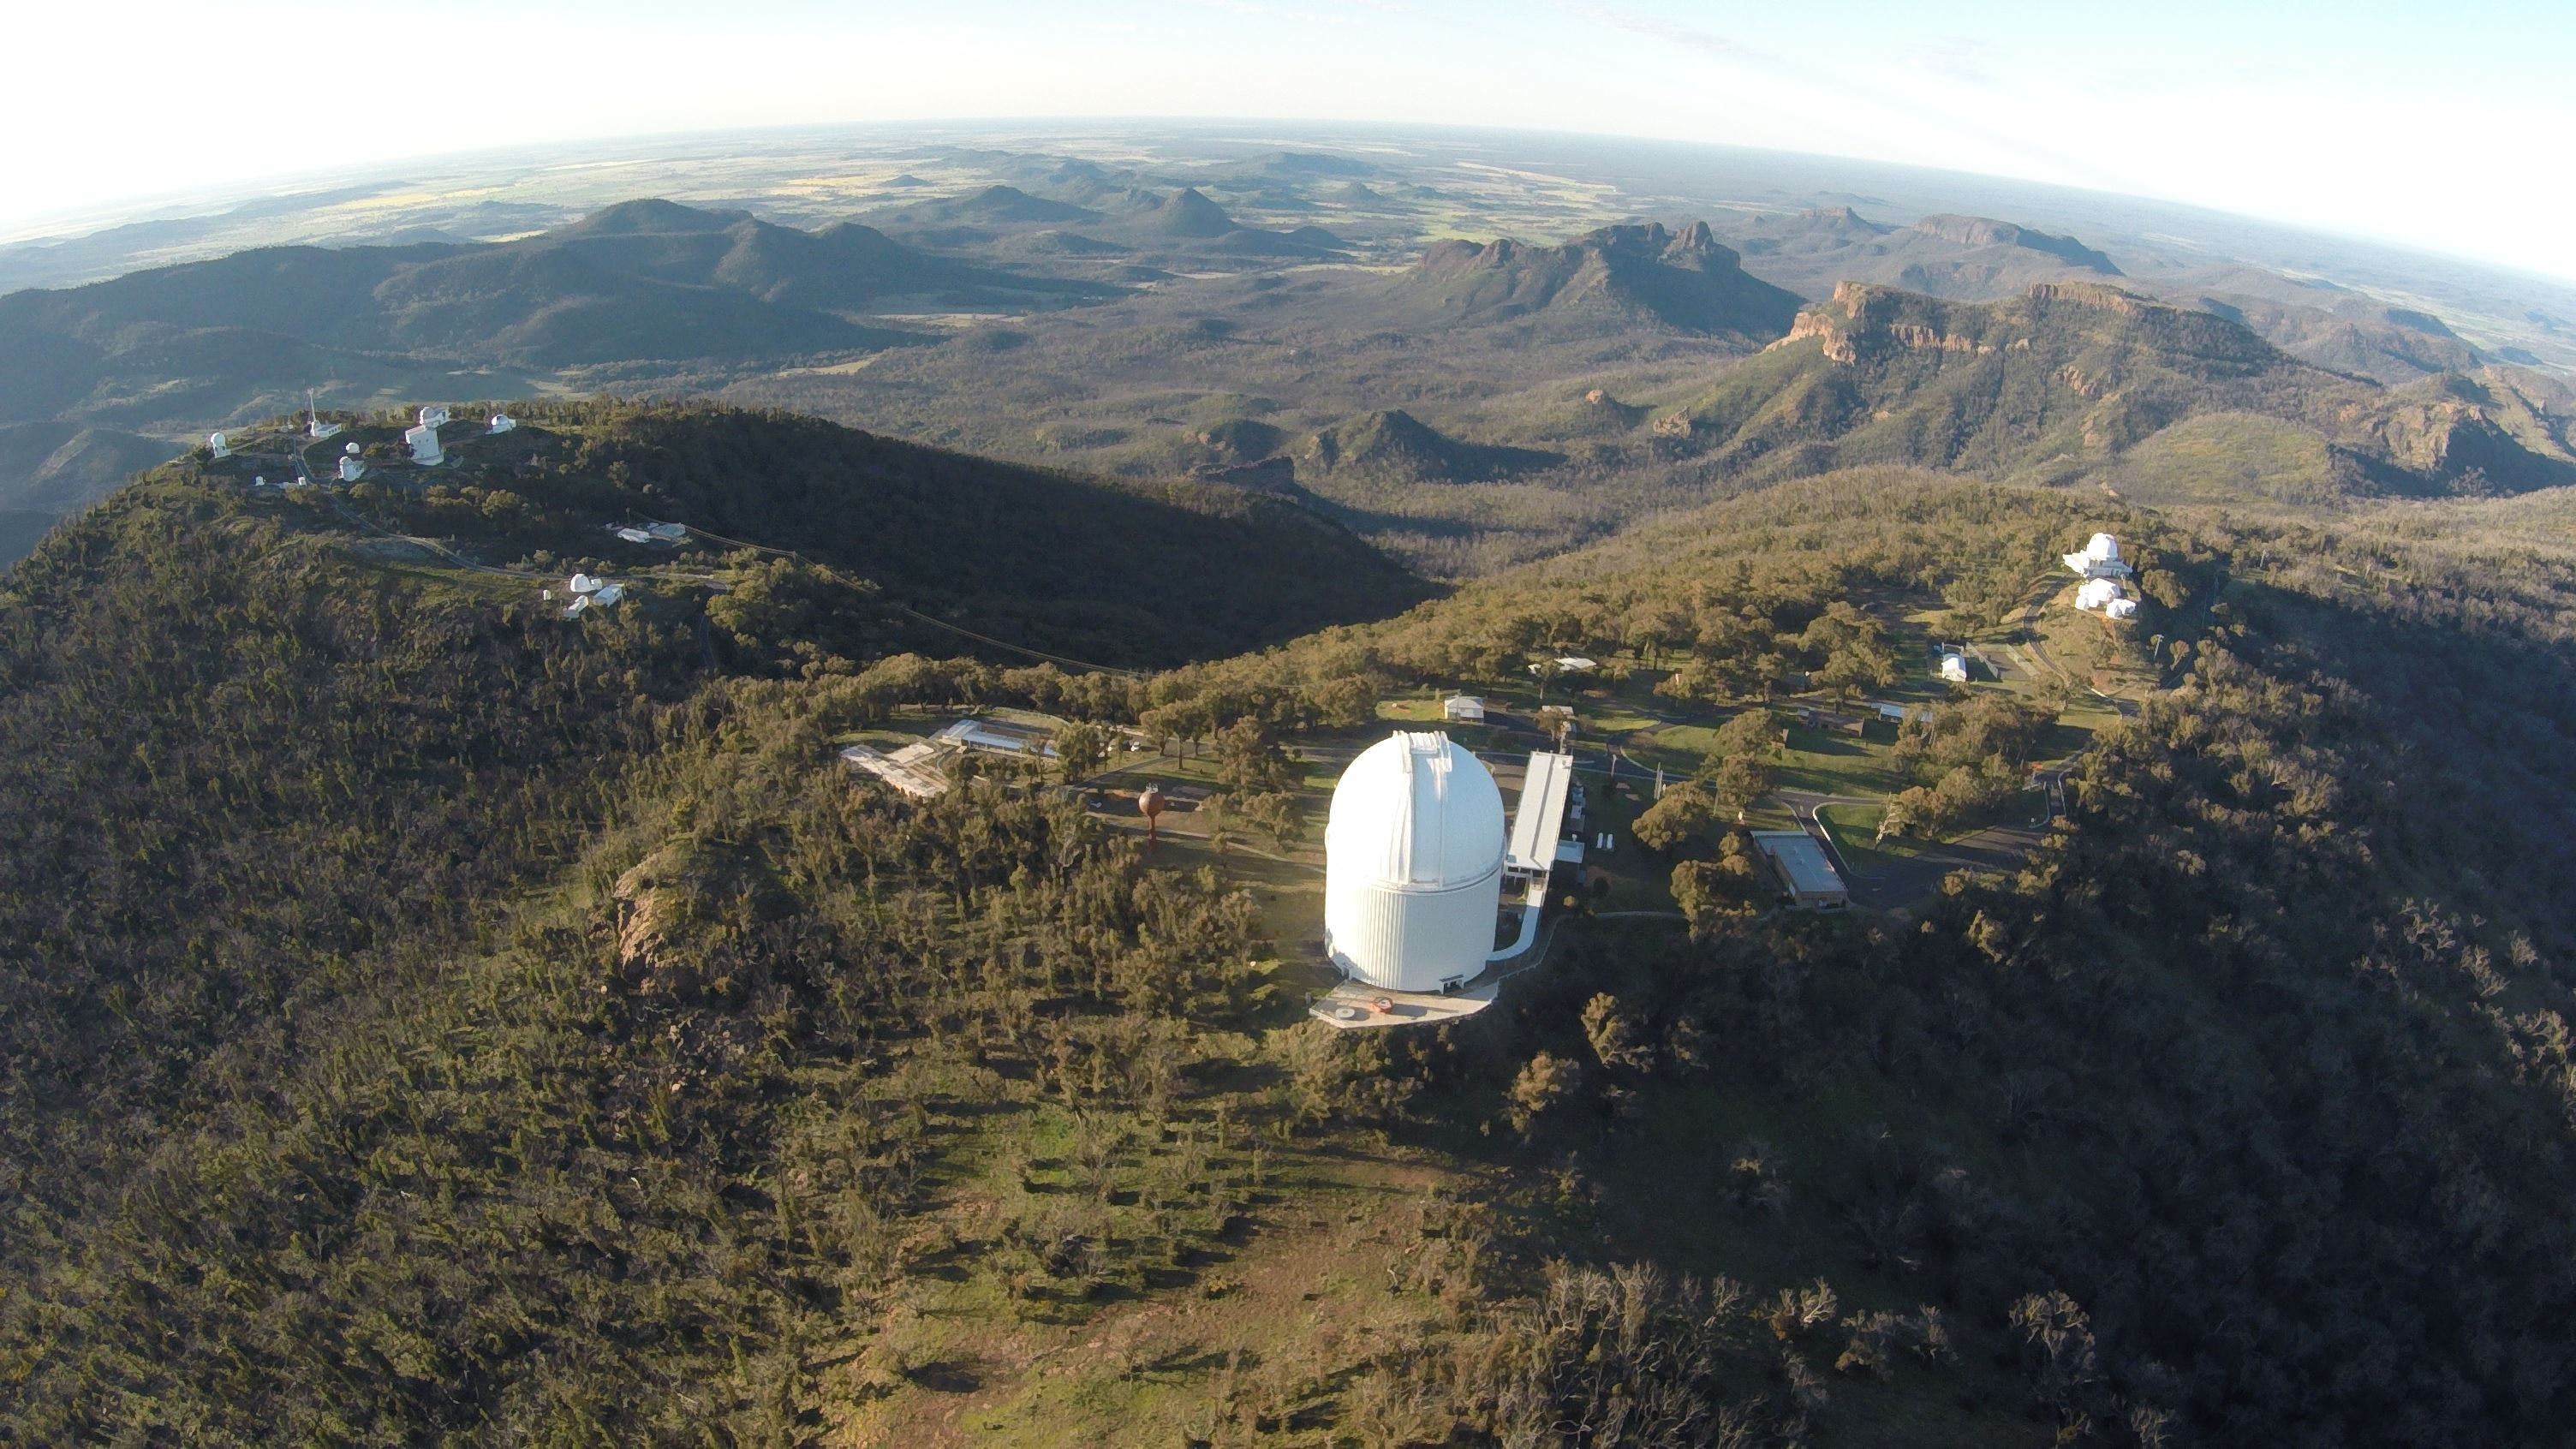 Siding Spring Observatory - Hotel Accommodation